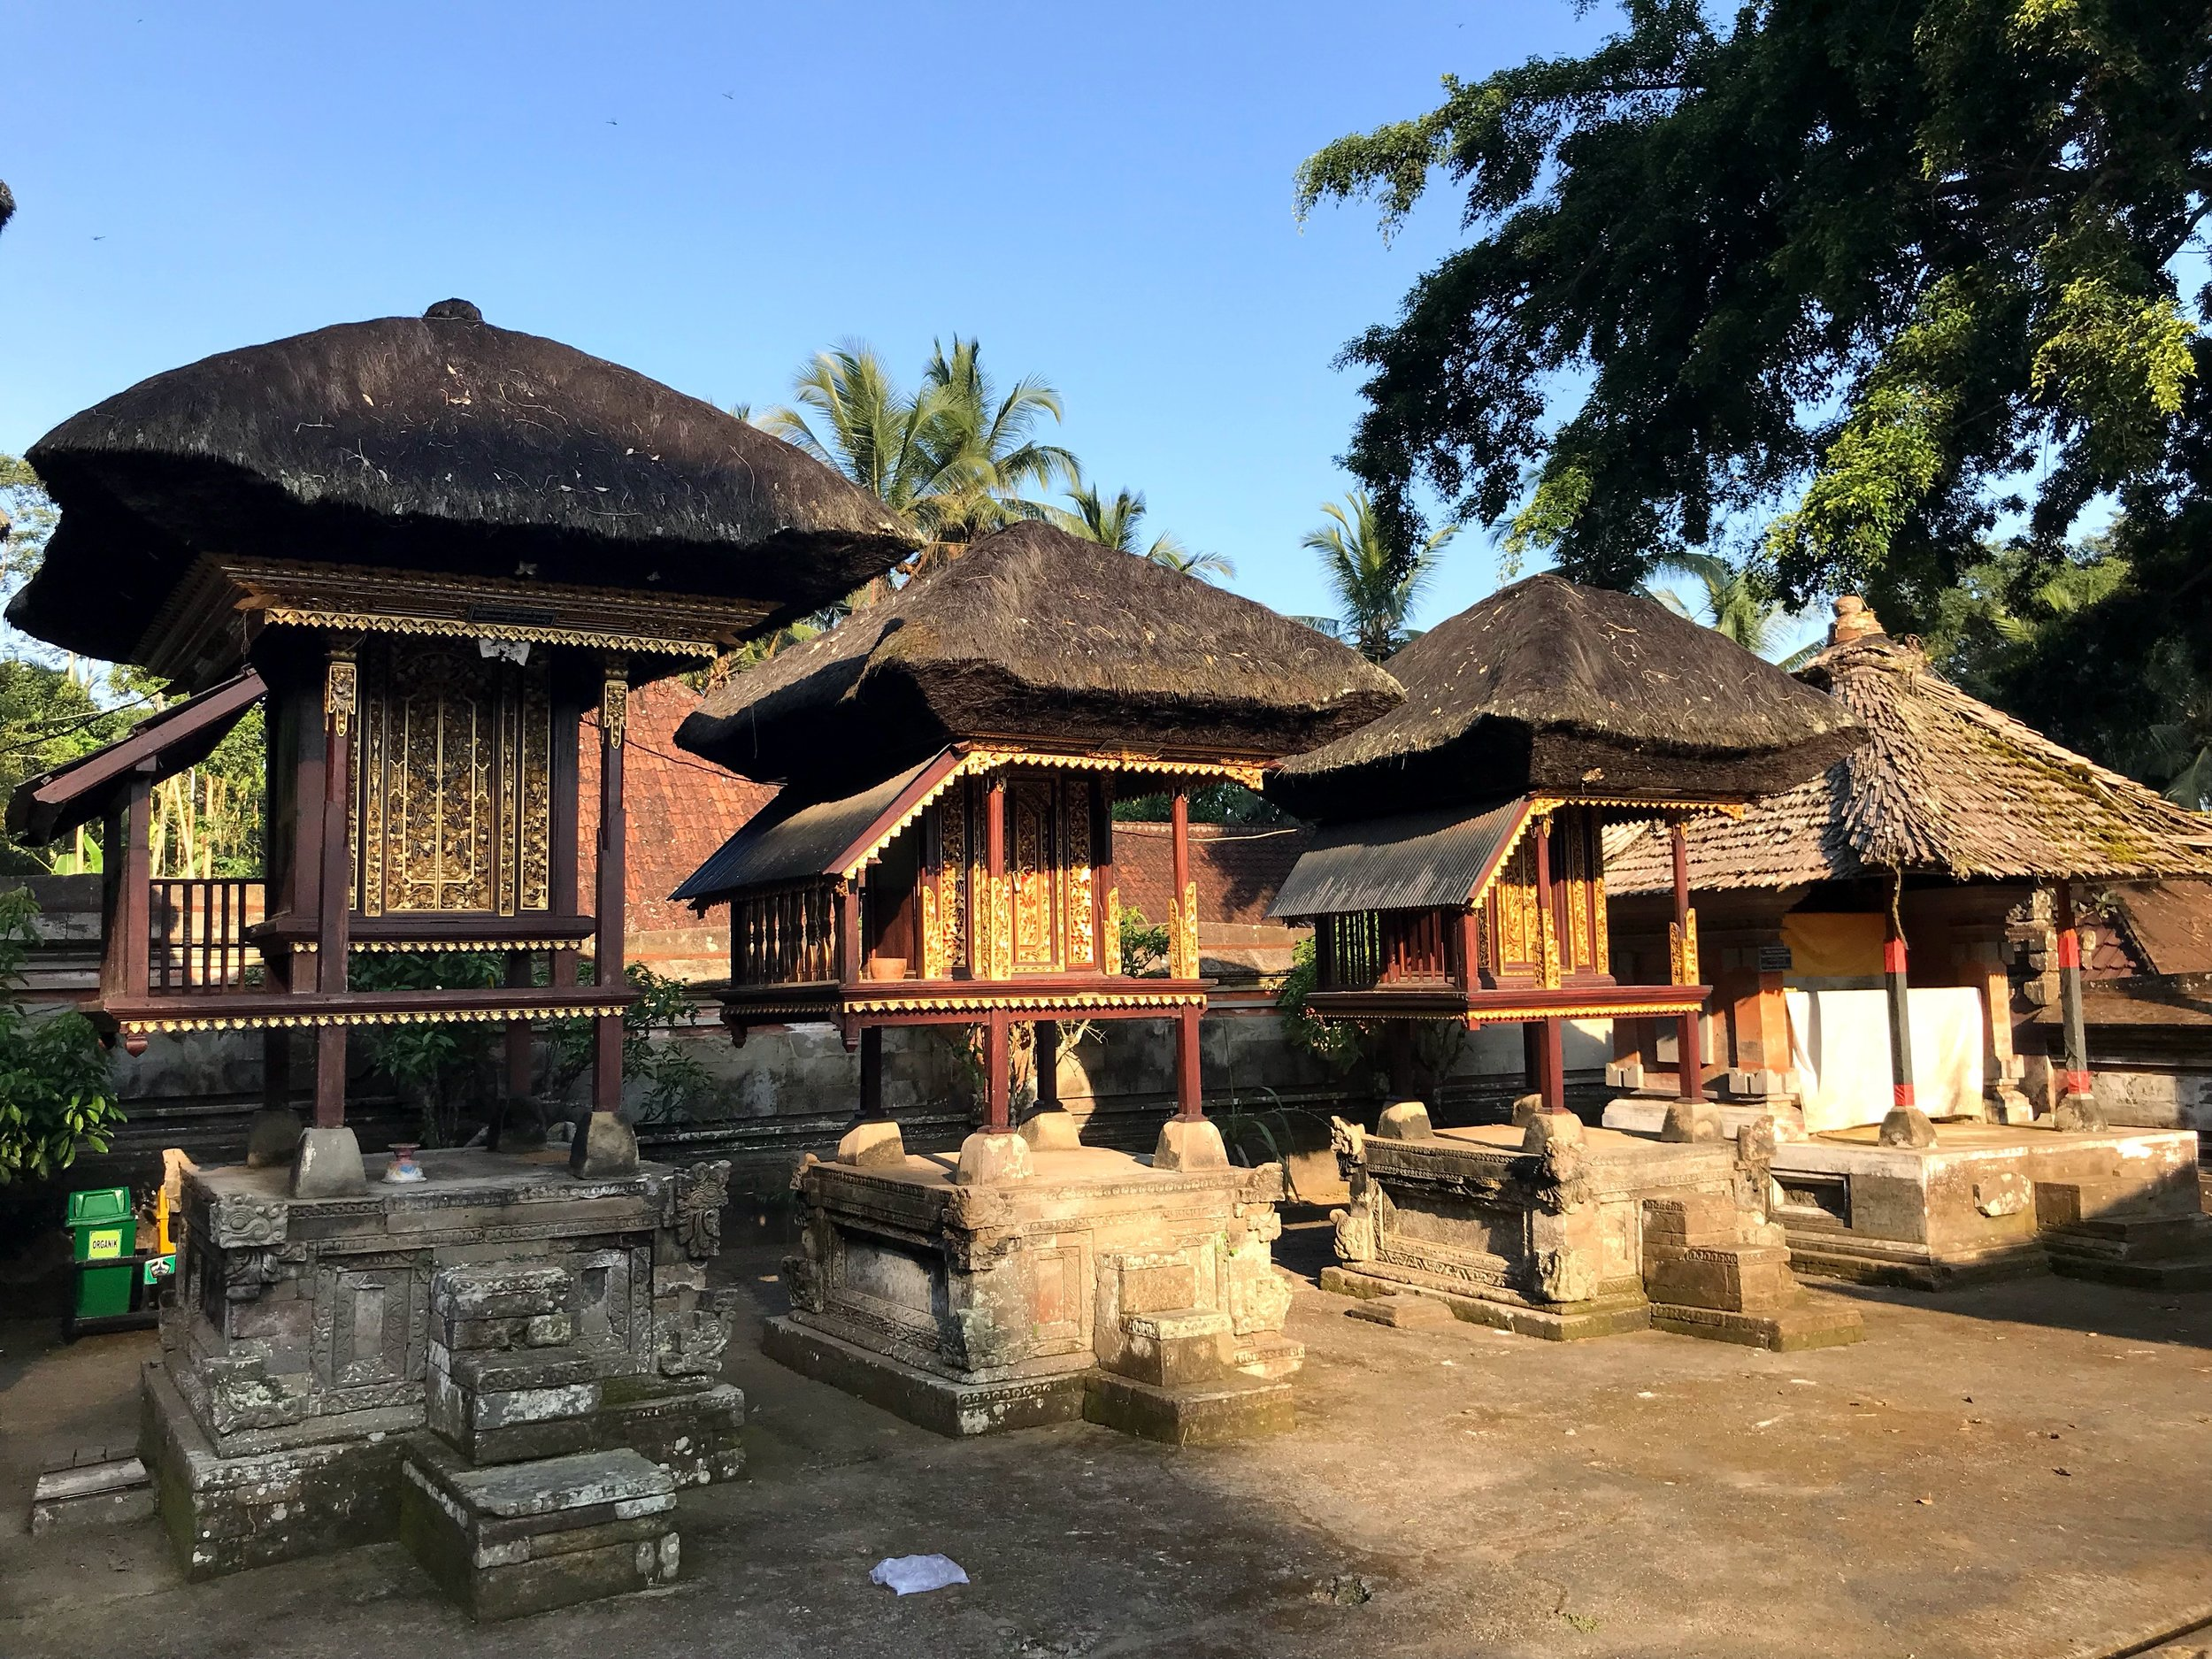 Smaller shrines on the temple complex are resting places for ancestral spirits during temple ceremonies